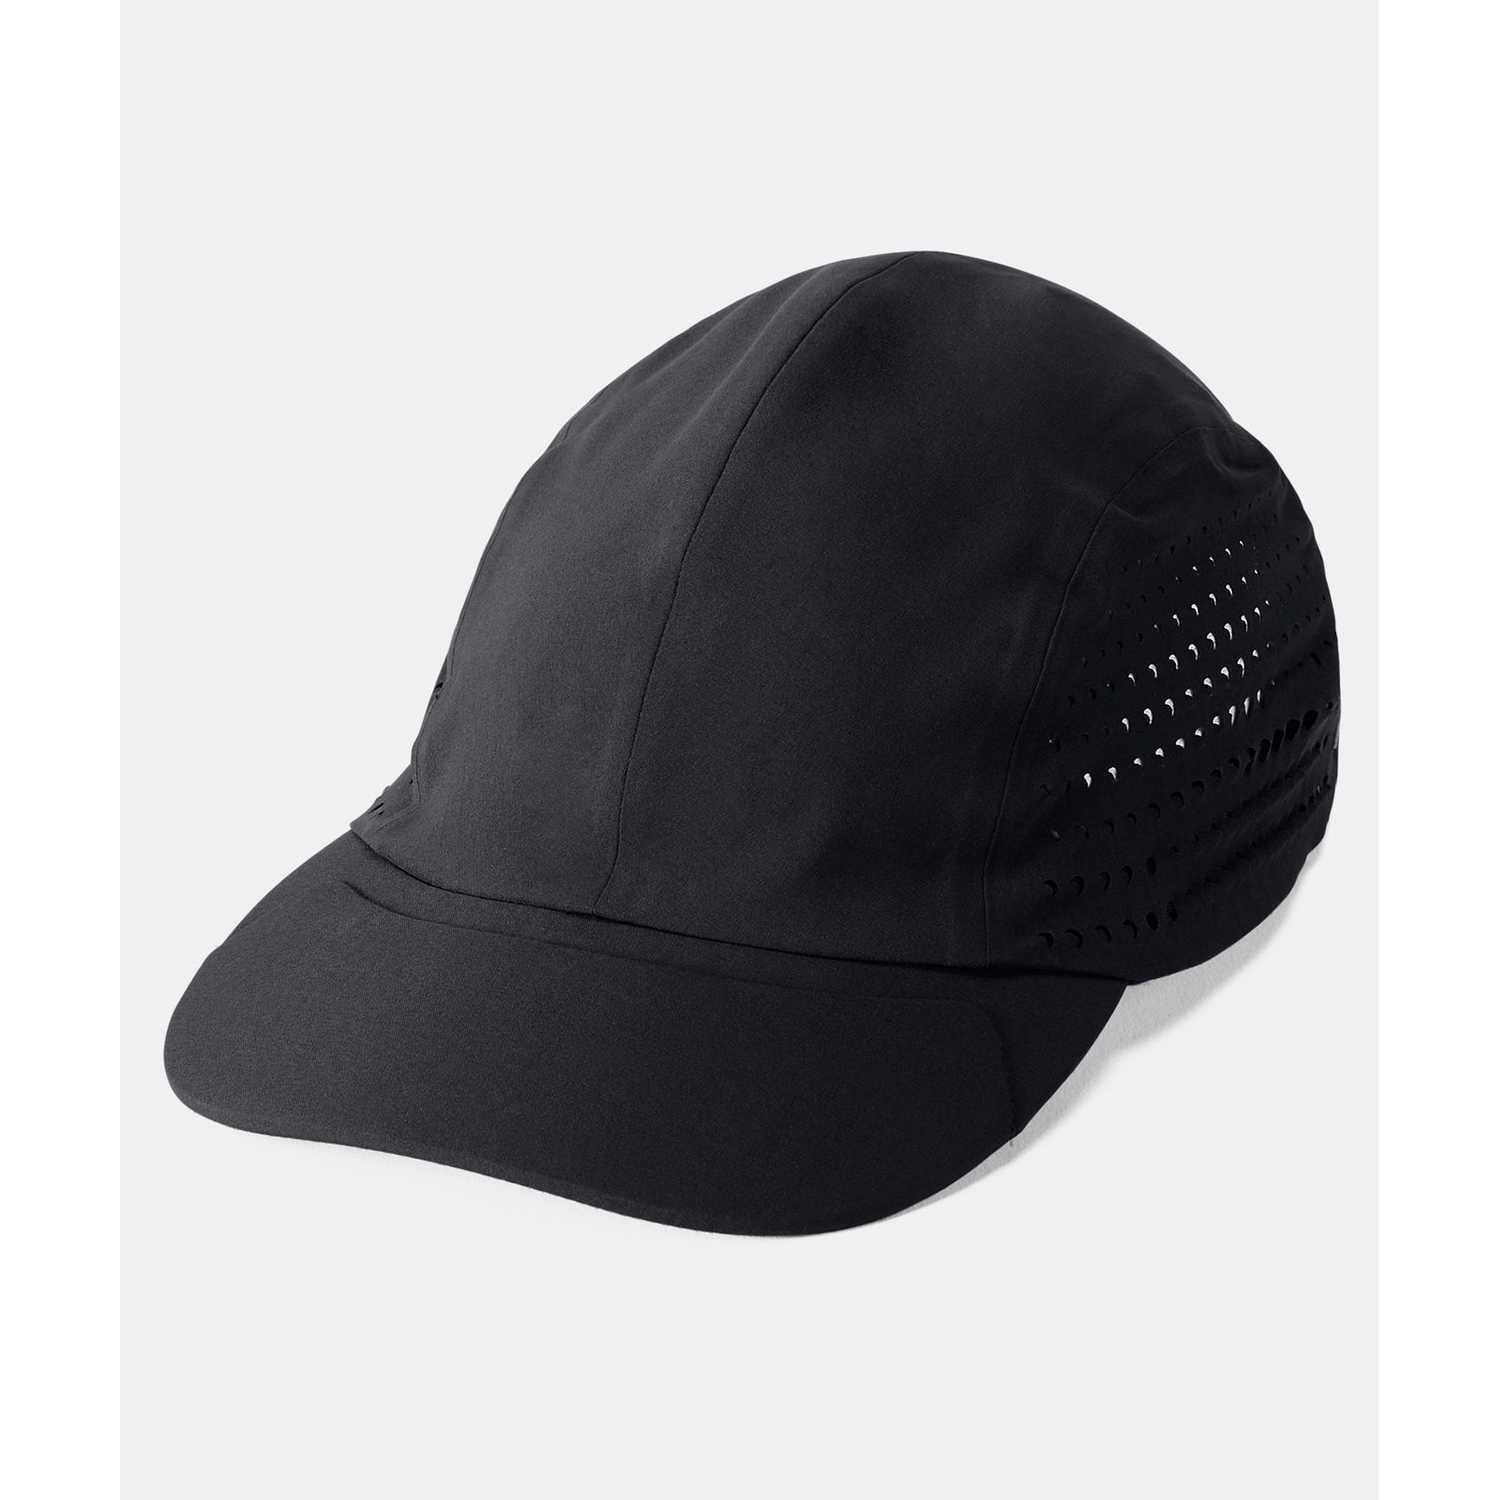 Gorro de Mujer Under Armour Negro /gris pinnacle train cap